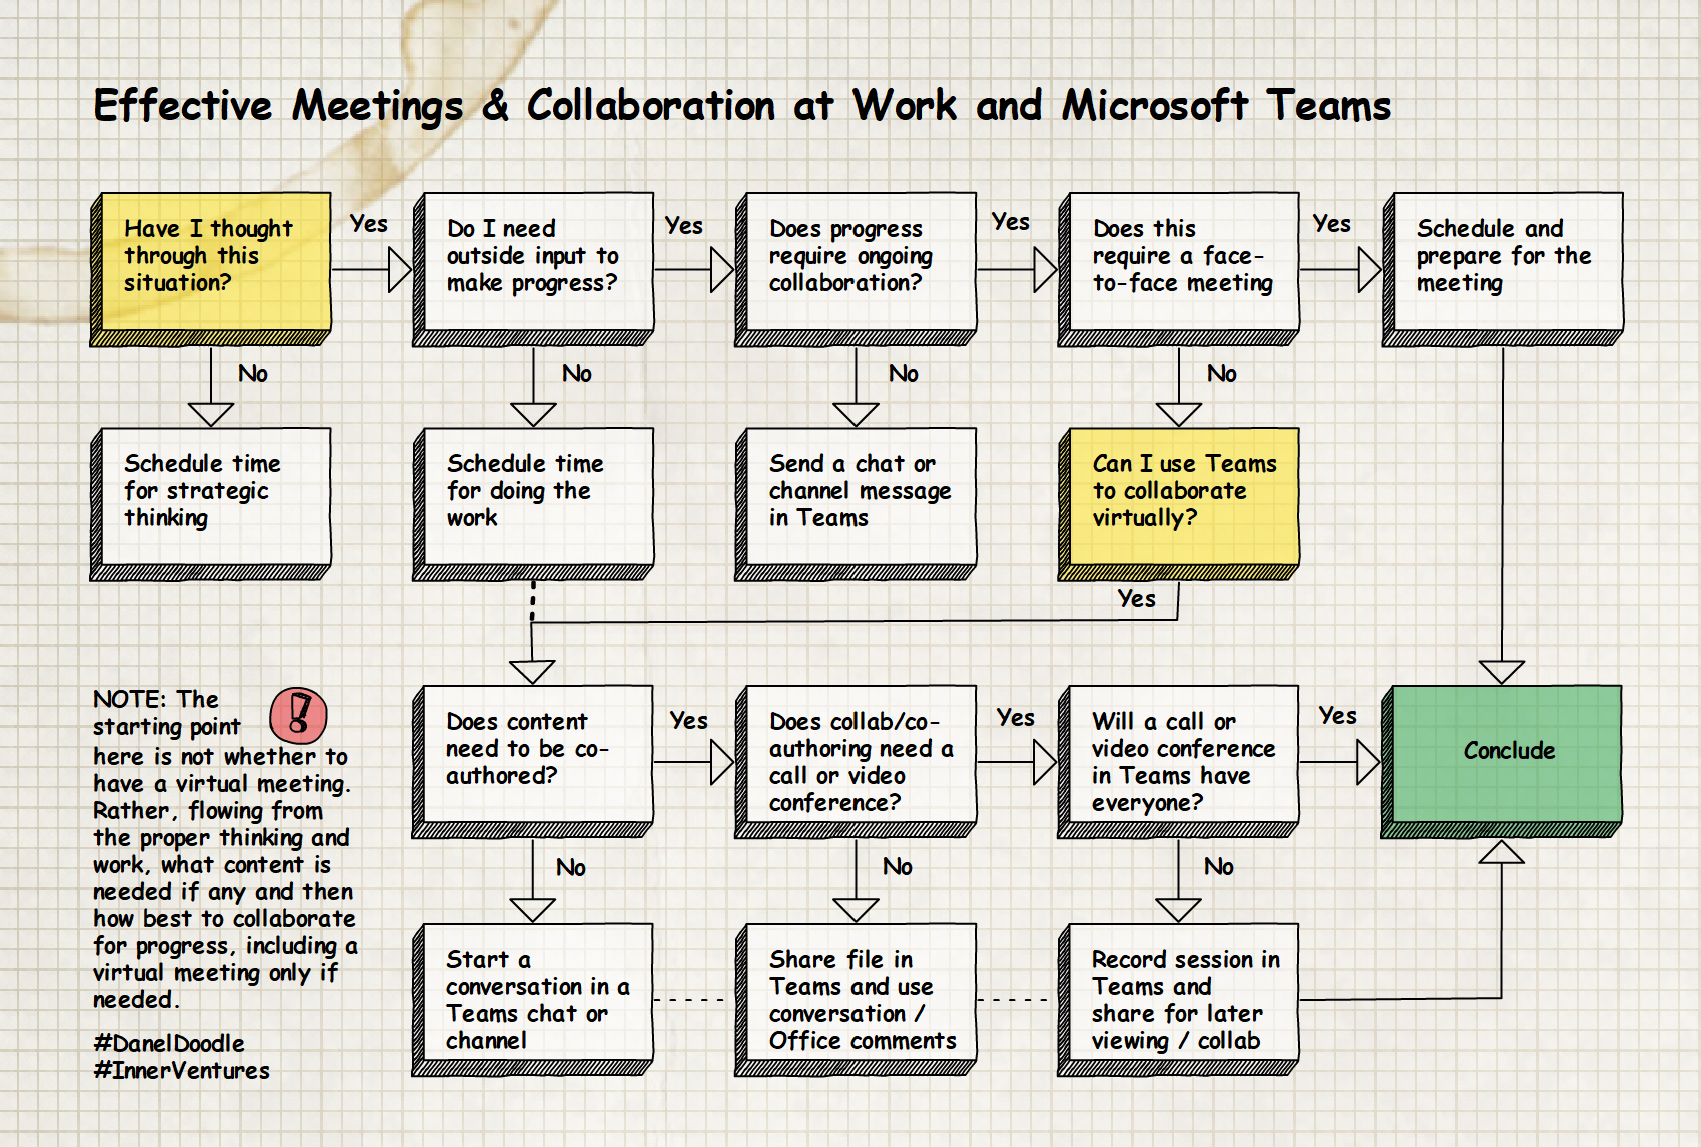 Effective Meetings and Collaboration at work and Microsoft Teams